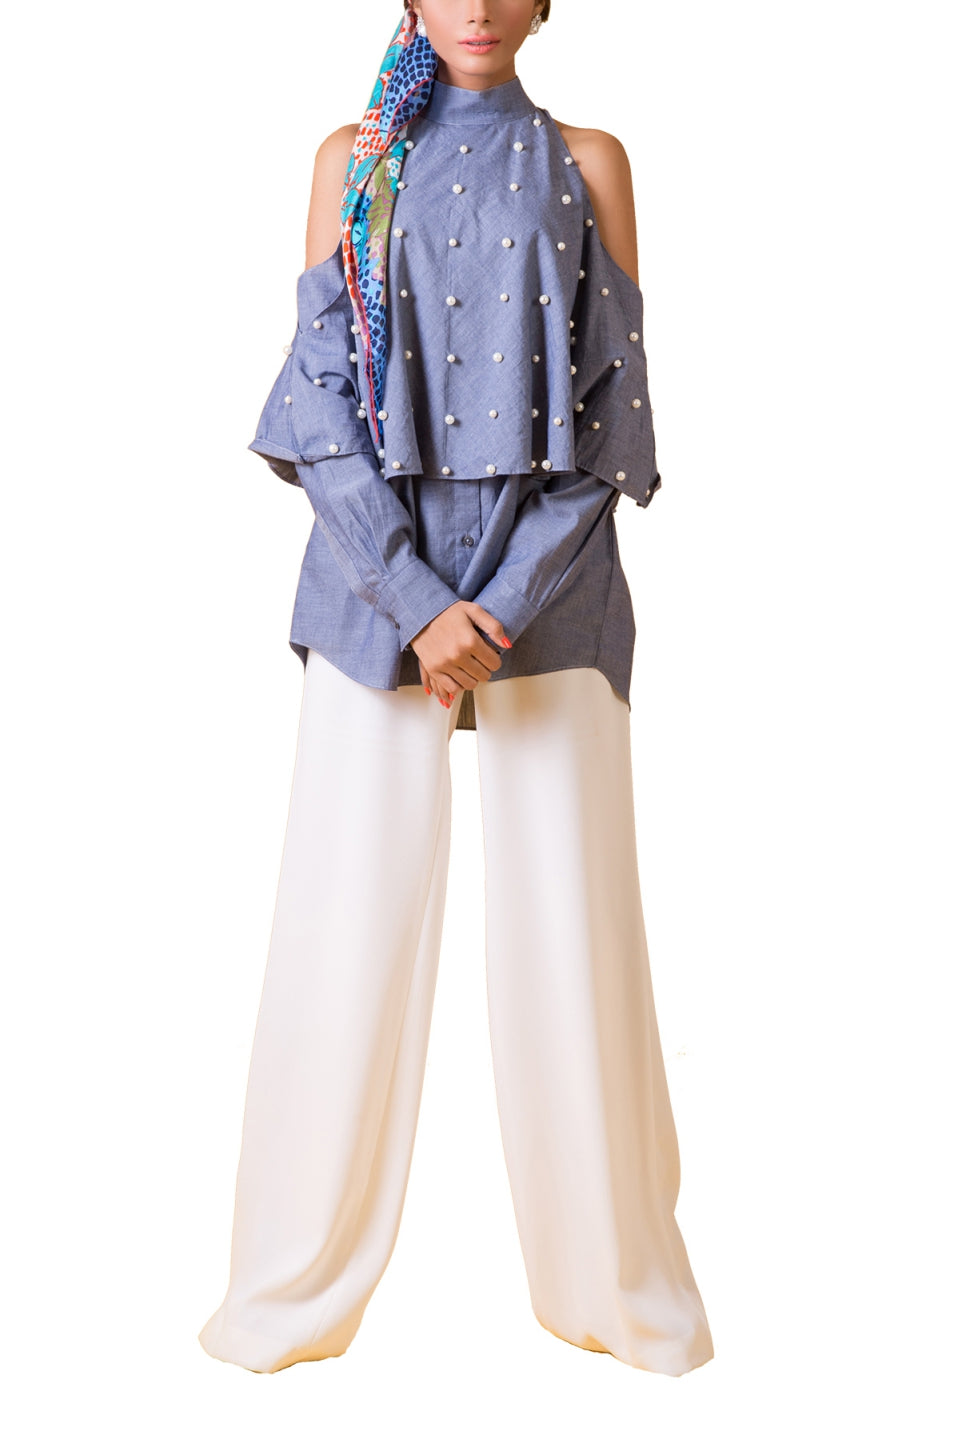 Maheen Karim - Blue Denim Yolk Cotton Top with Pearl Buttons